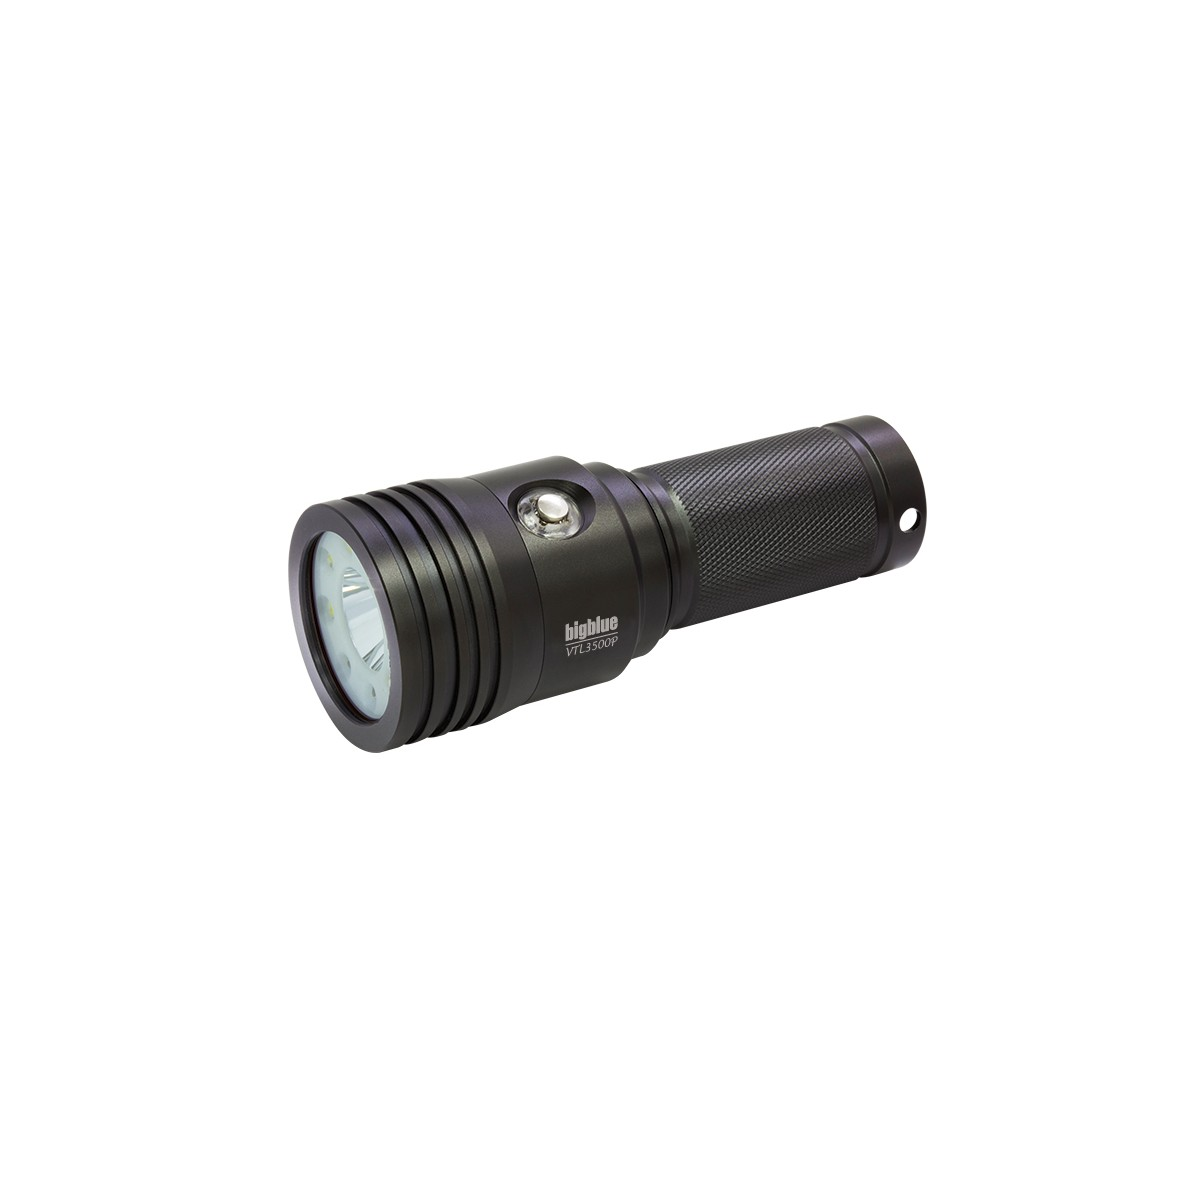 Bigblue 3500 Lumen Dual Beam Light - Video + Tech (VTL3500P)